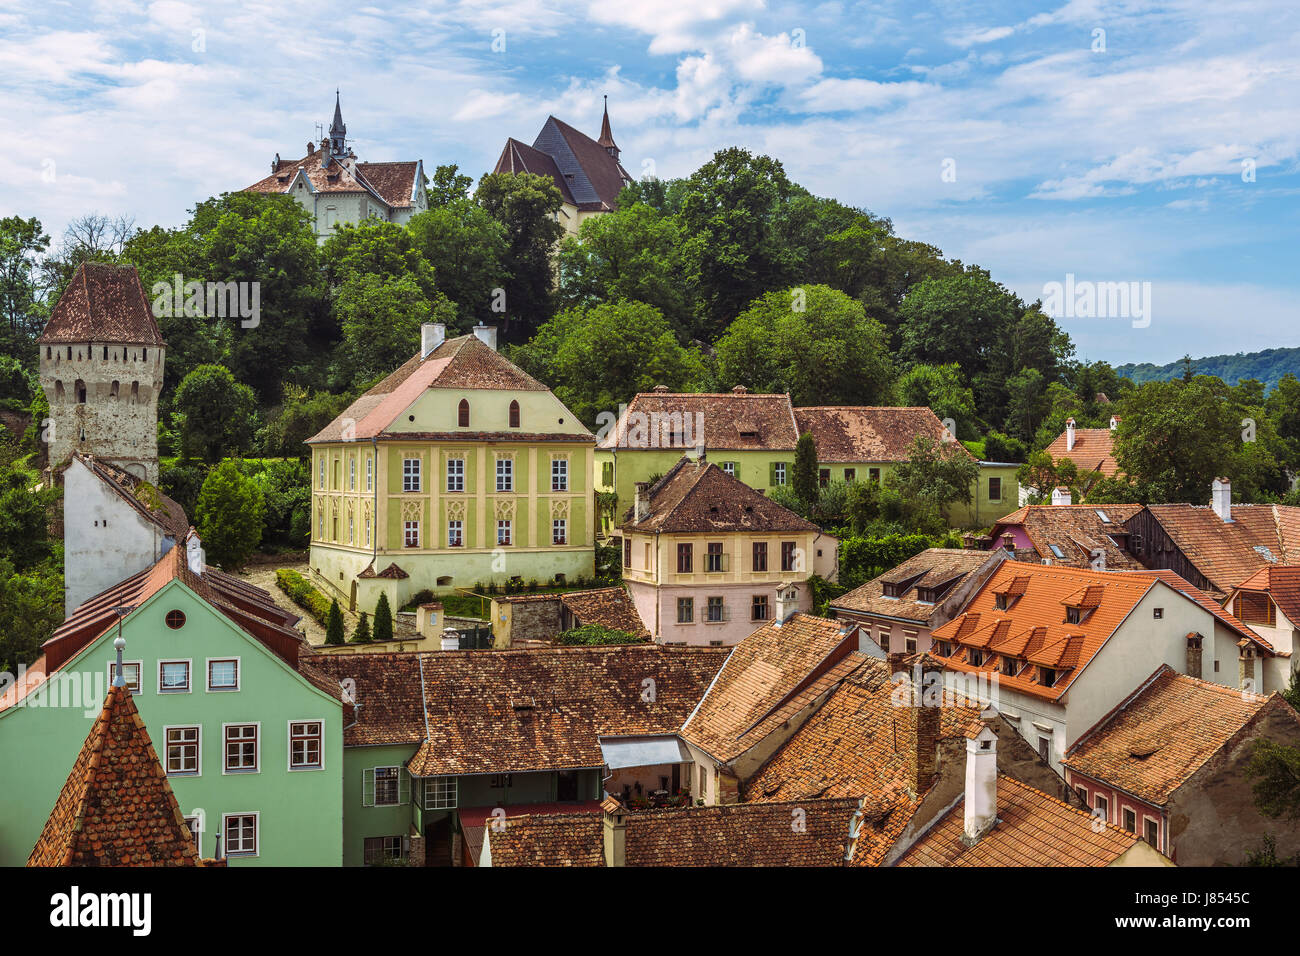 Medieval citadel on the hill above the old Lower Town of Sighisoara city, Romania, one of the most beautiful and - Stock Image